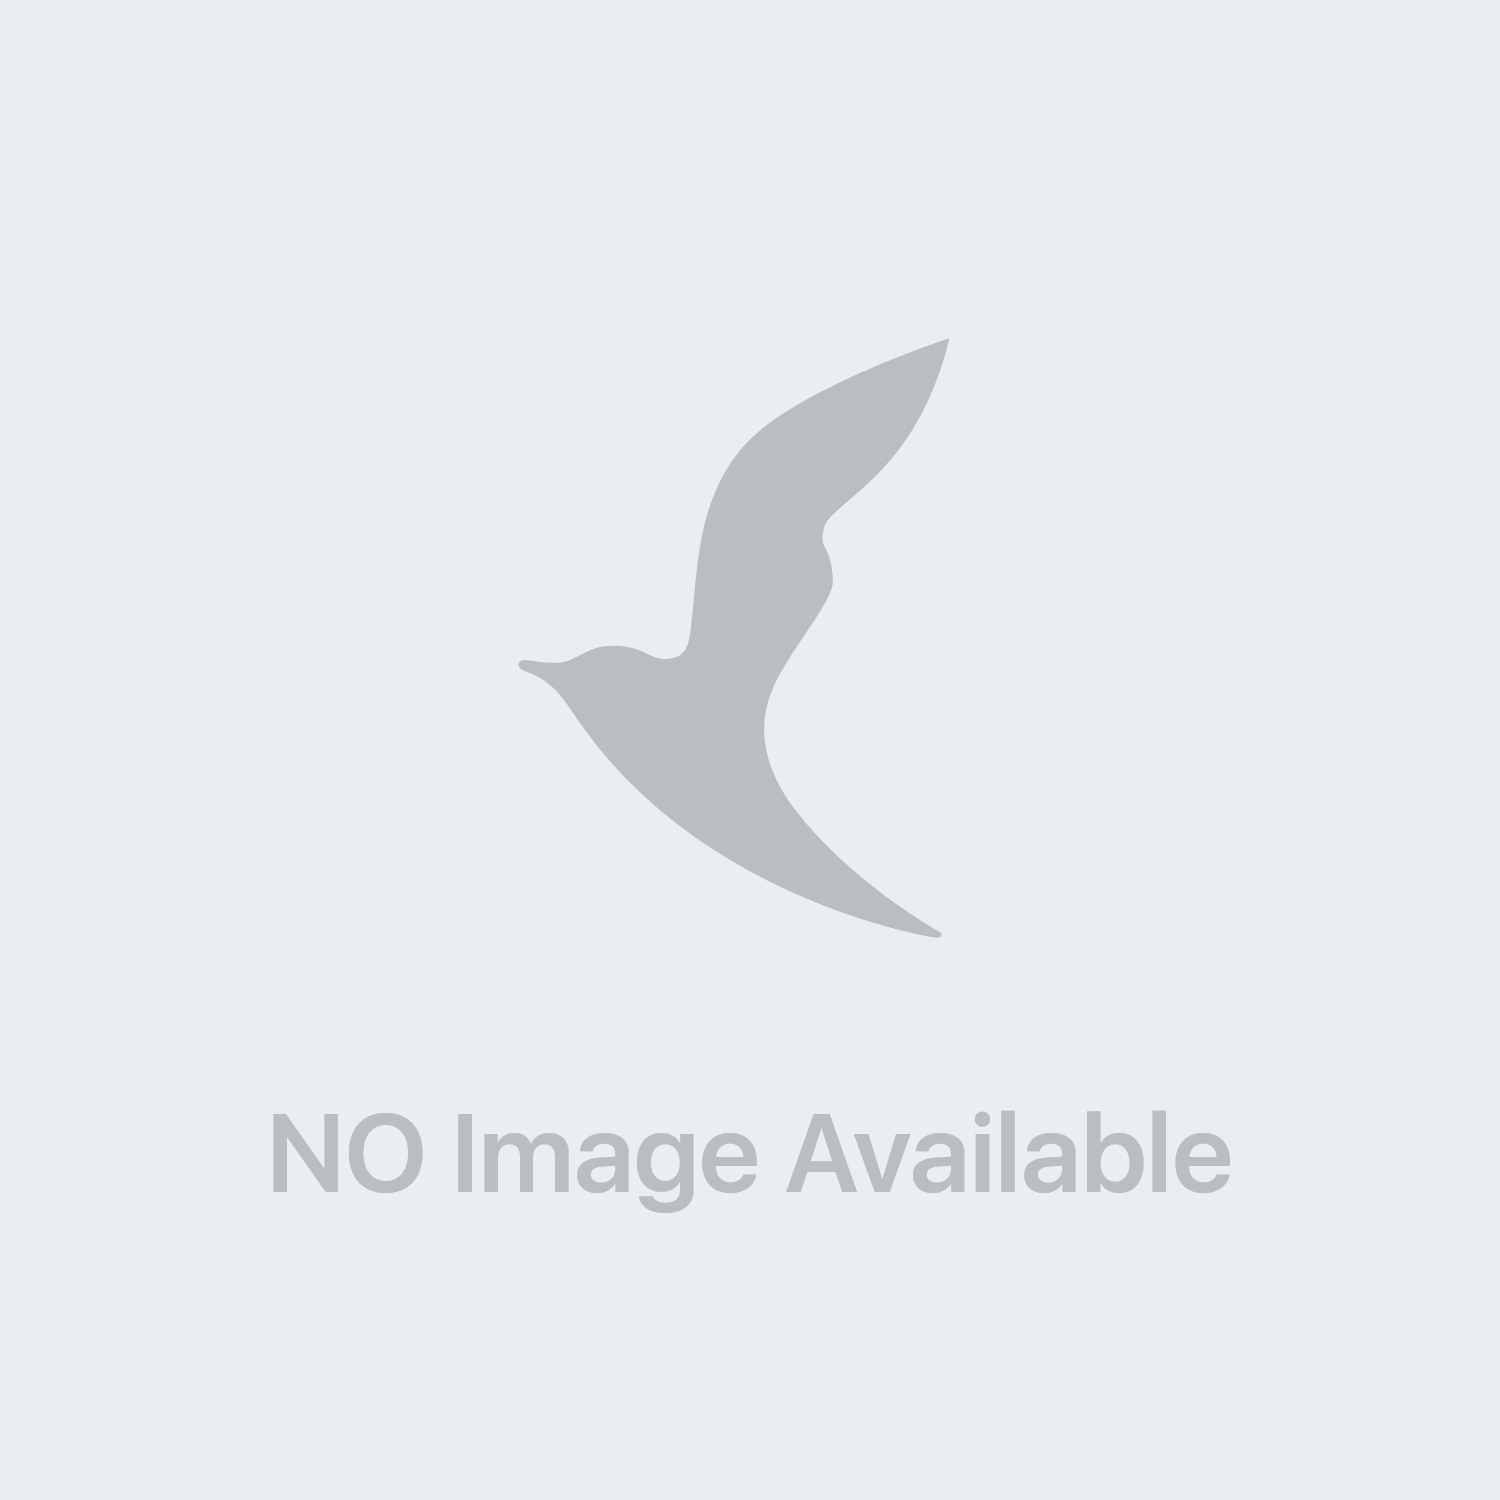 Sebamed Doccia Action Detergente 200 Ml